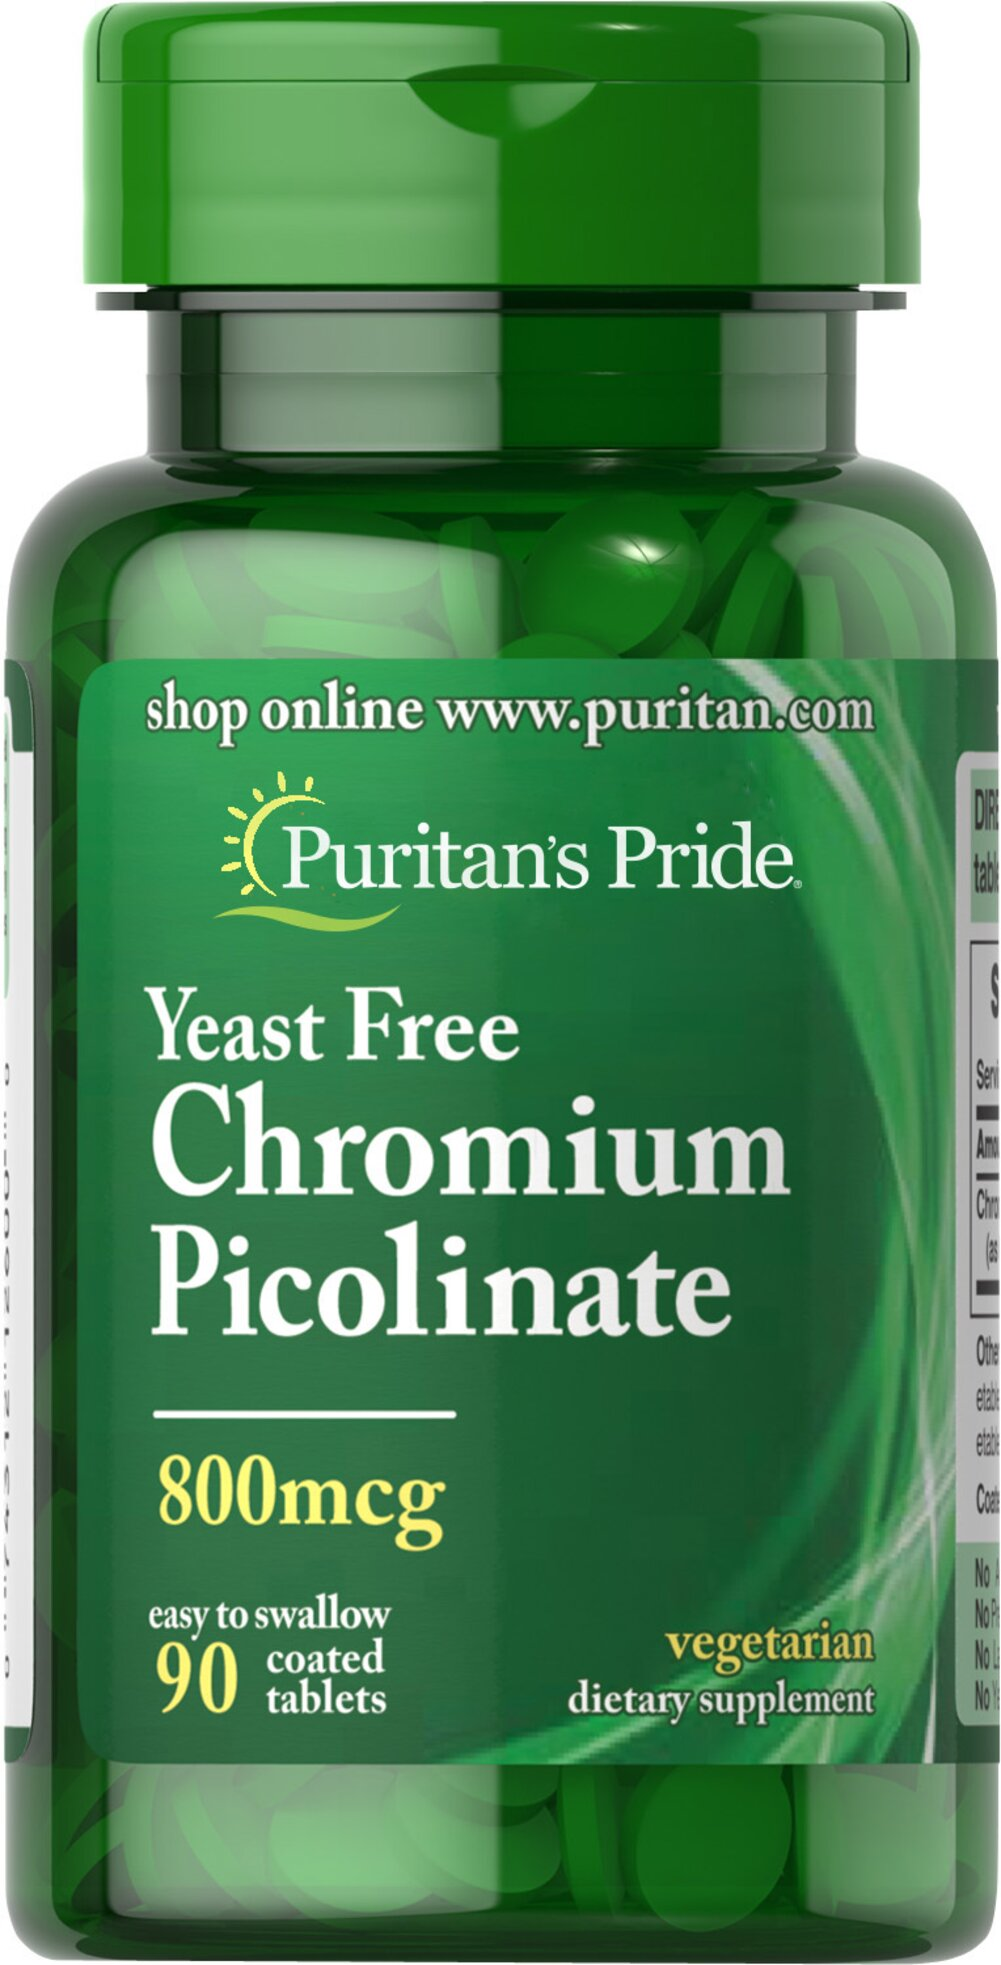 Chromium Picolinate 800 mcg Yeast Free Thumbnail Alternate Bottle View